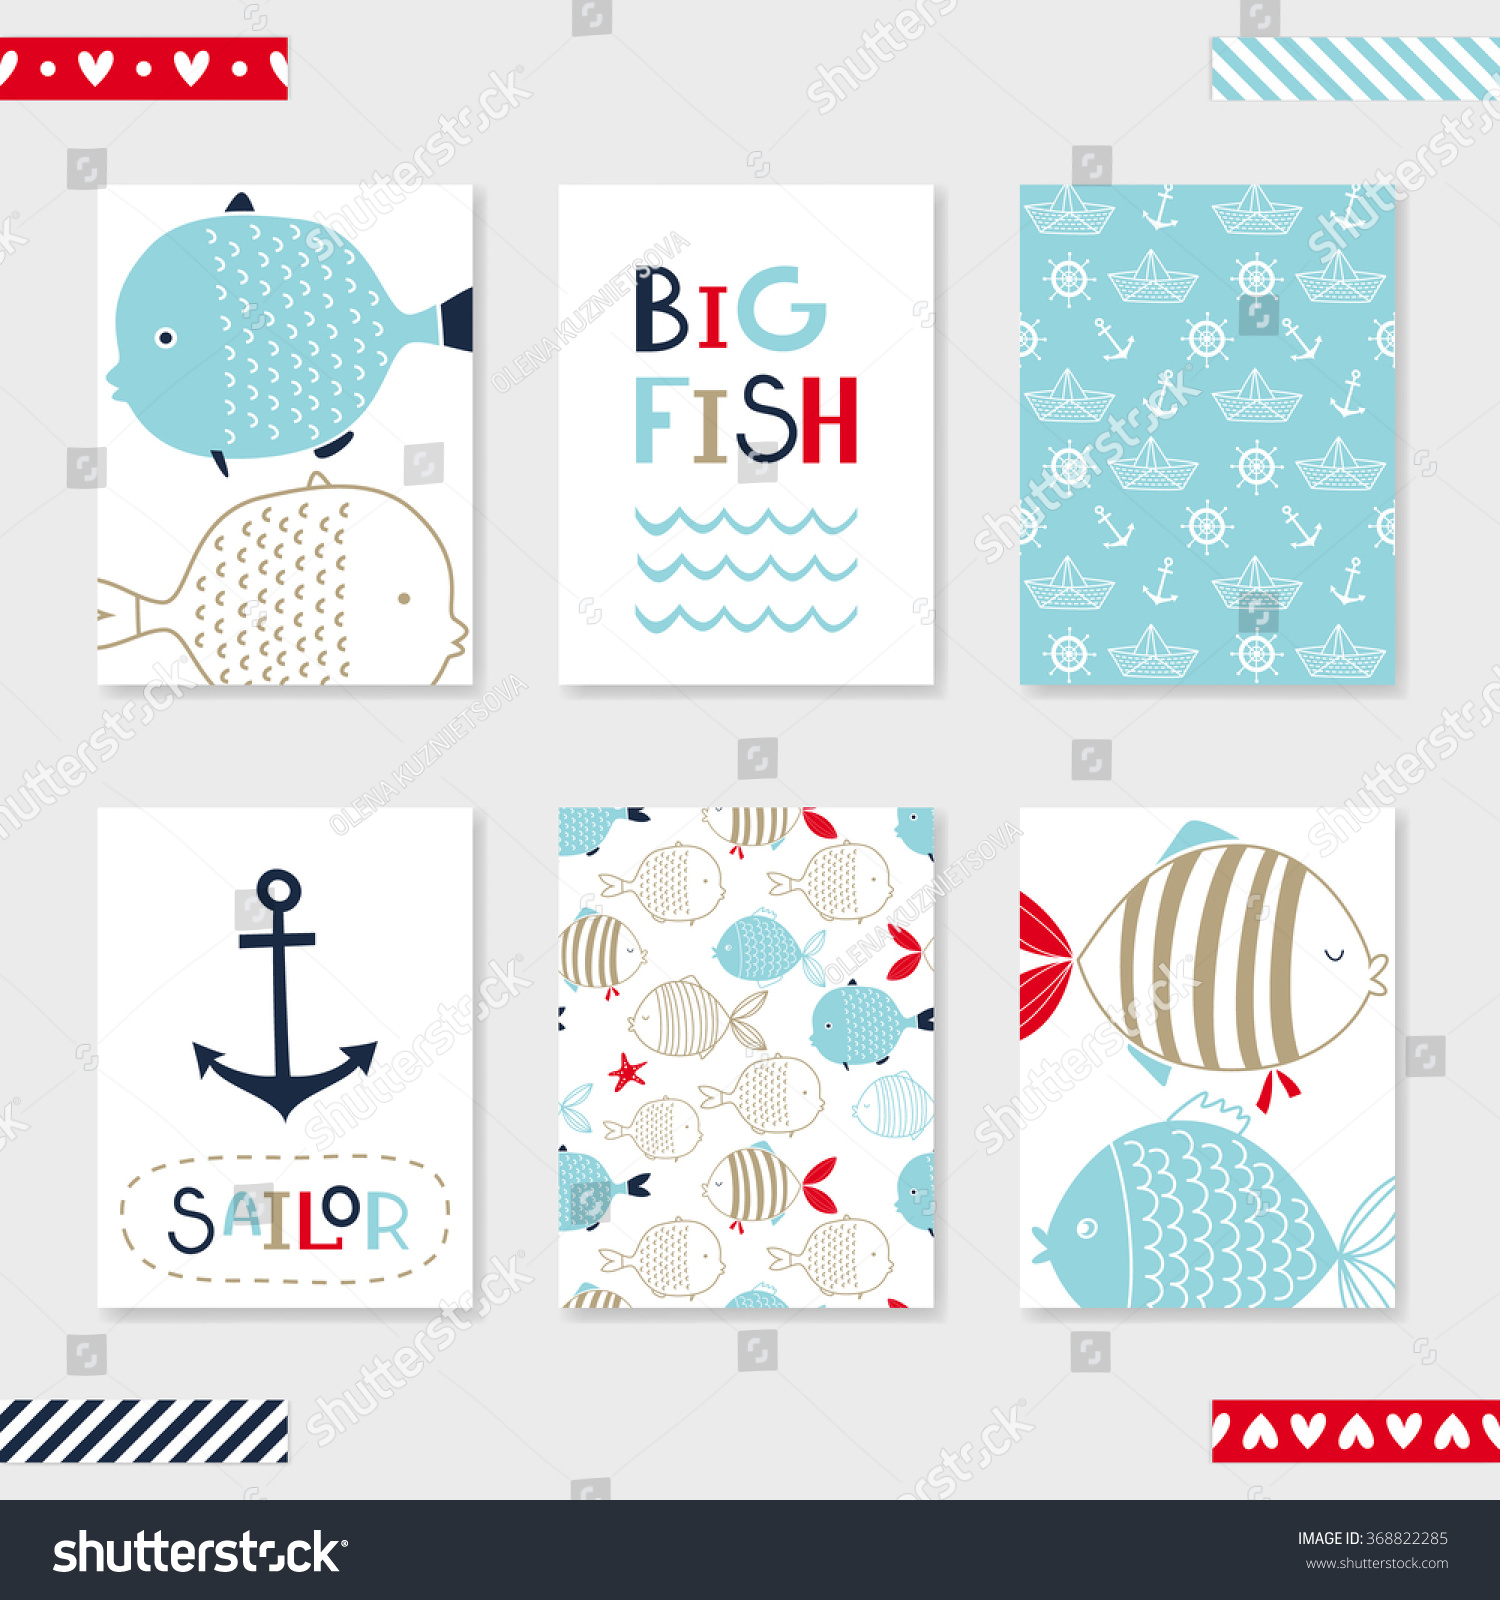 6 Birthday Card Templates: Set 6 Cute Creative Cards Templates ���วกเตอร์สต็อก